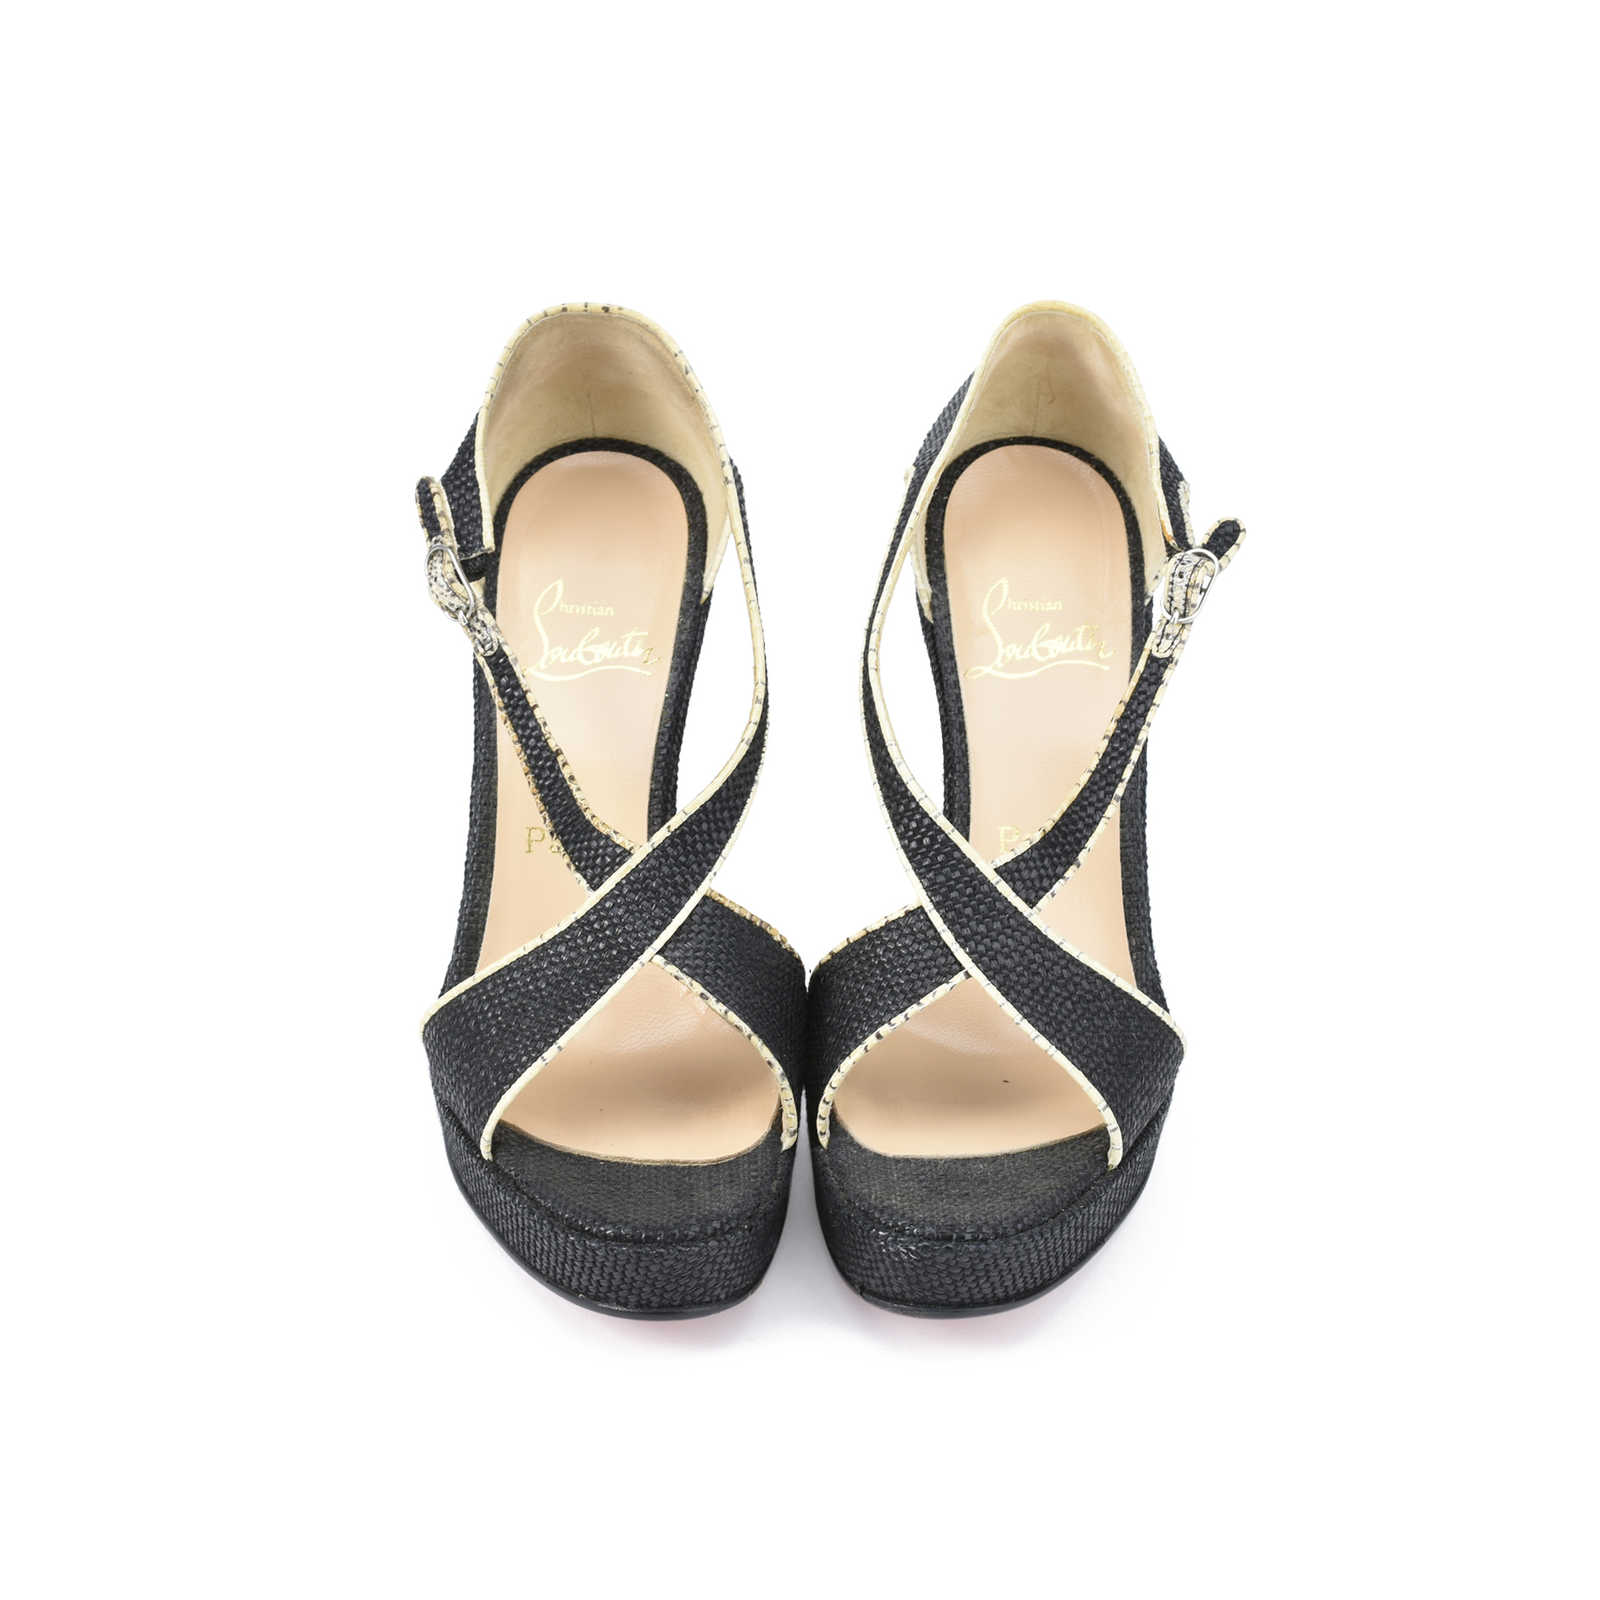 166bc4398a0 Authentic Second Hand Christian Louboutin Raffia Wedge Sandals  (PSS-393-00034) ...